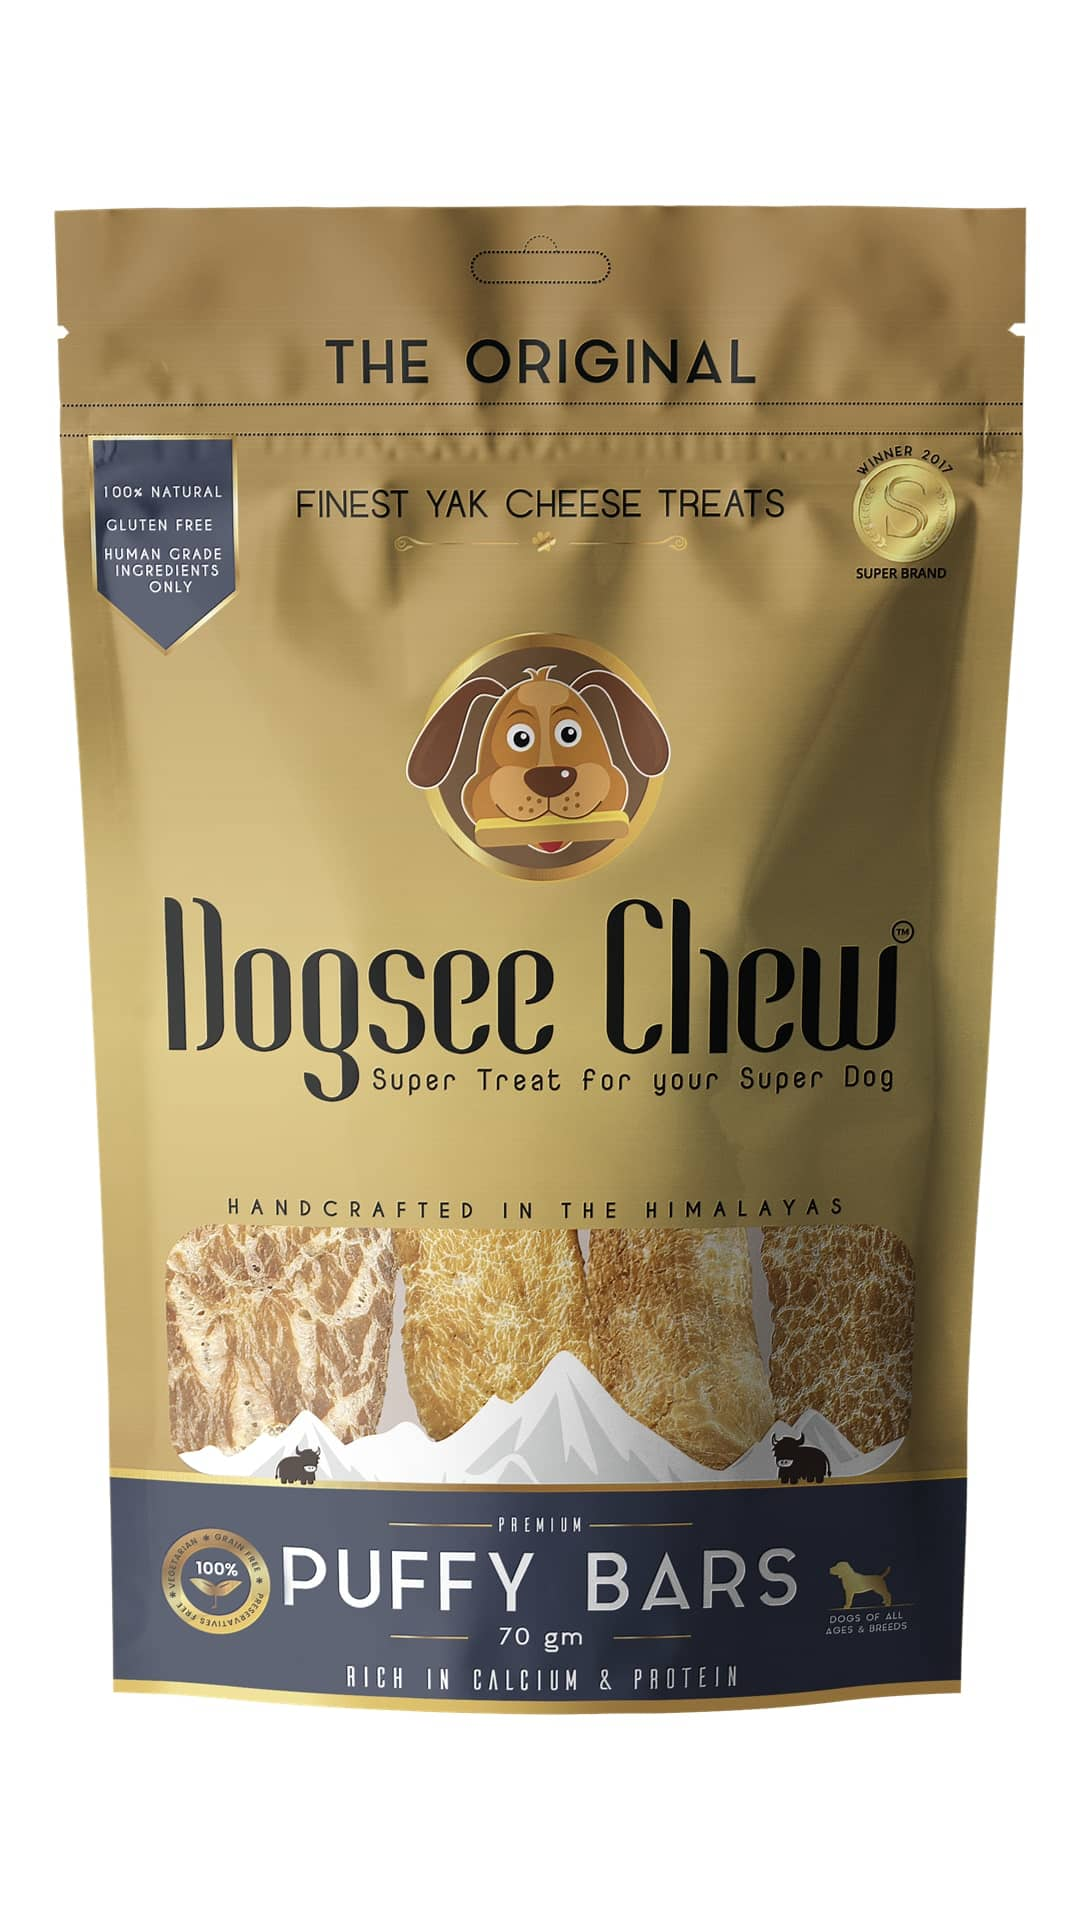 Dogsee Chew Puffy Bars @99 + Free Shipping